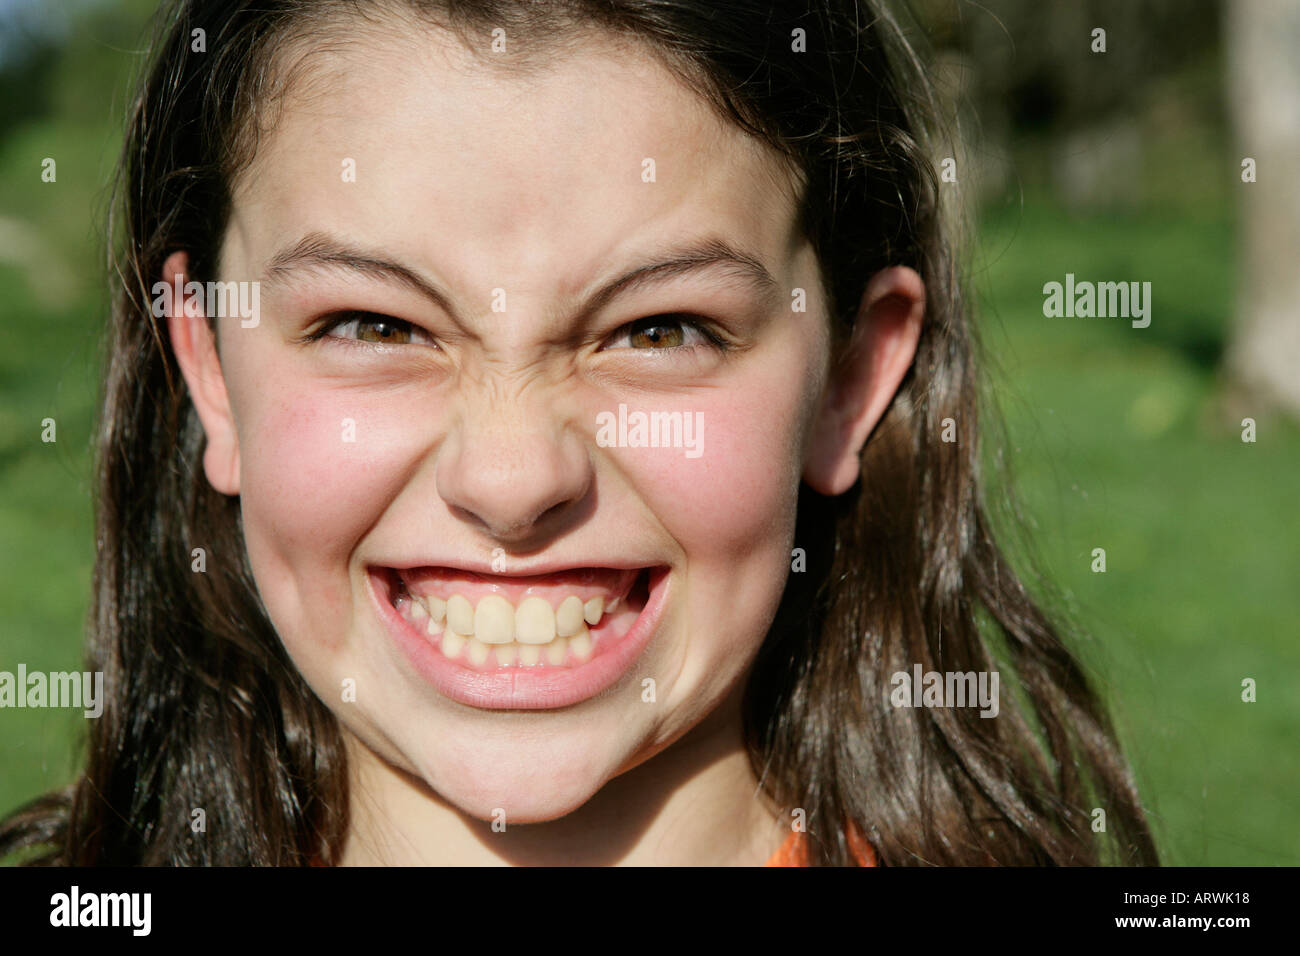 young brunette girl grinning ARWK18